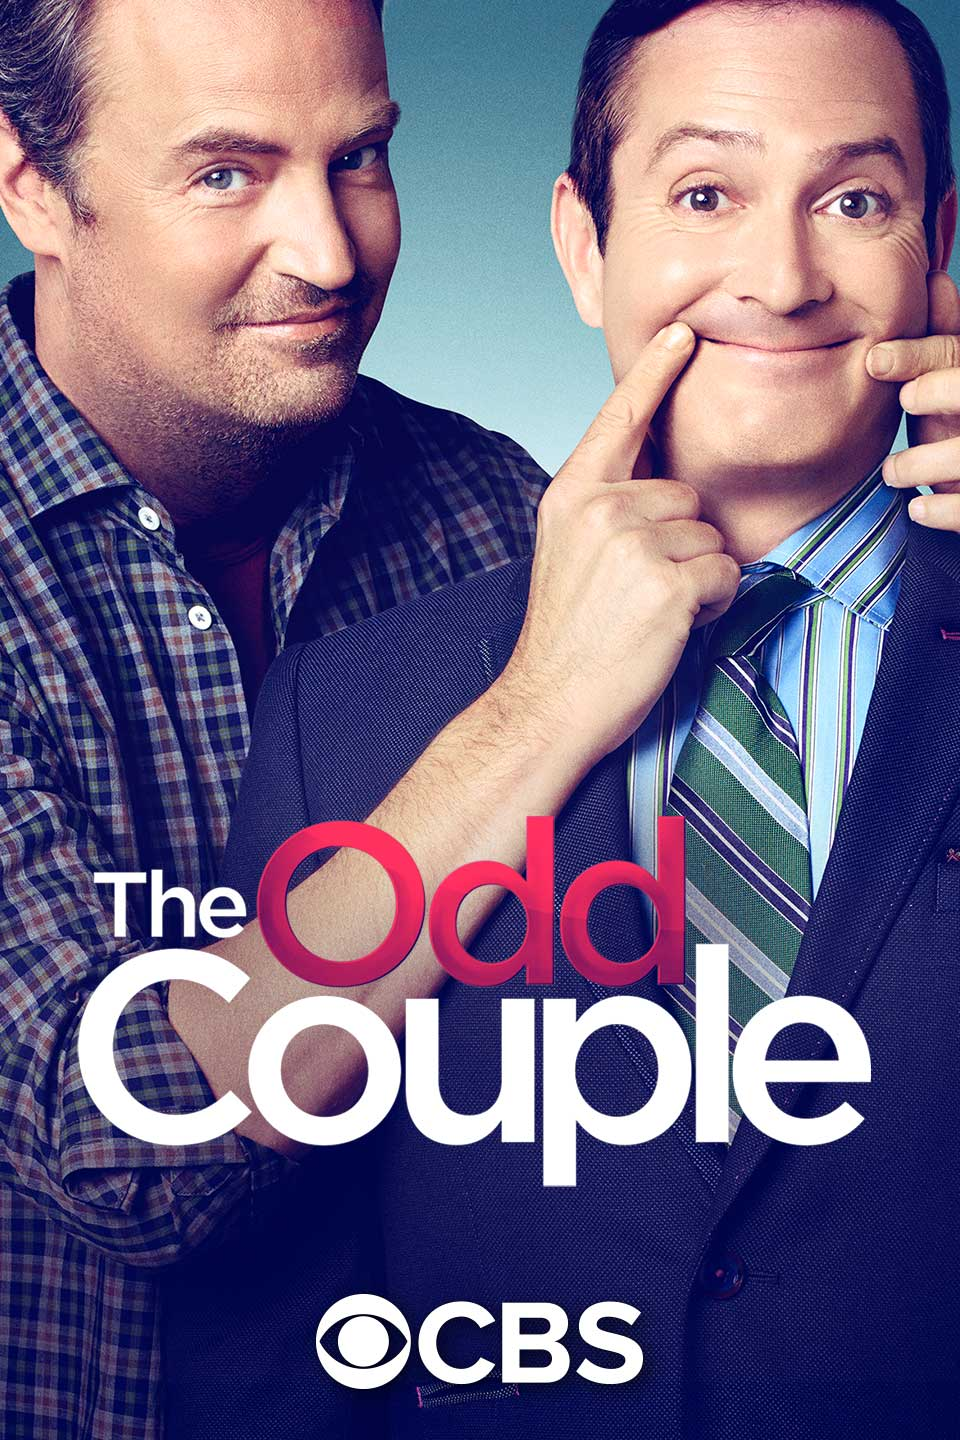 The Odd Couple kapak